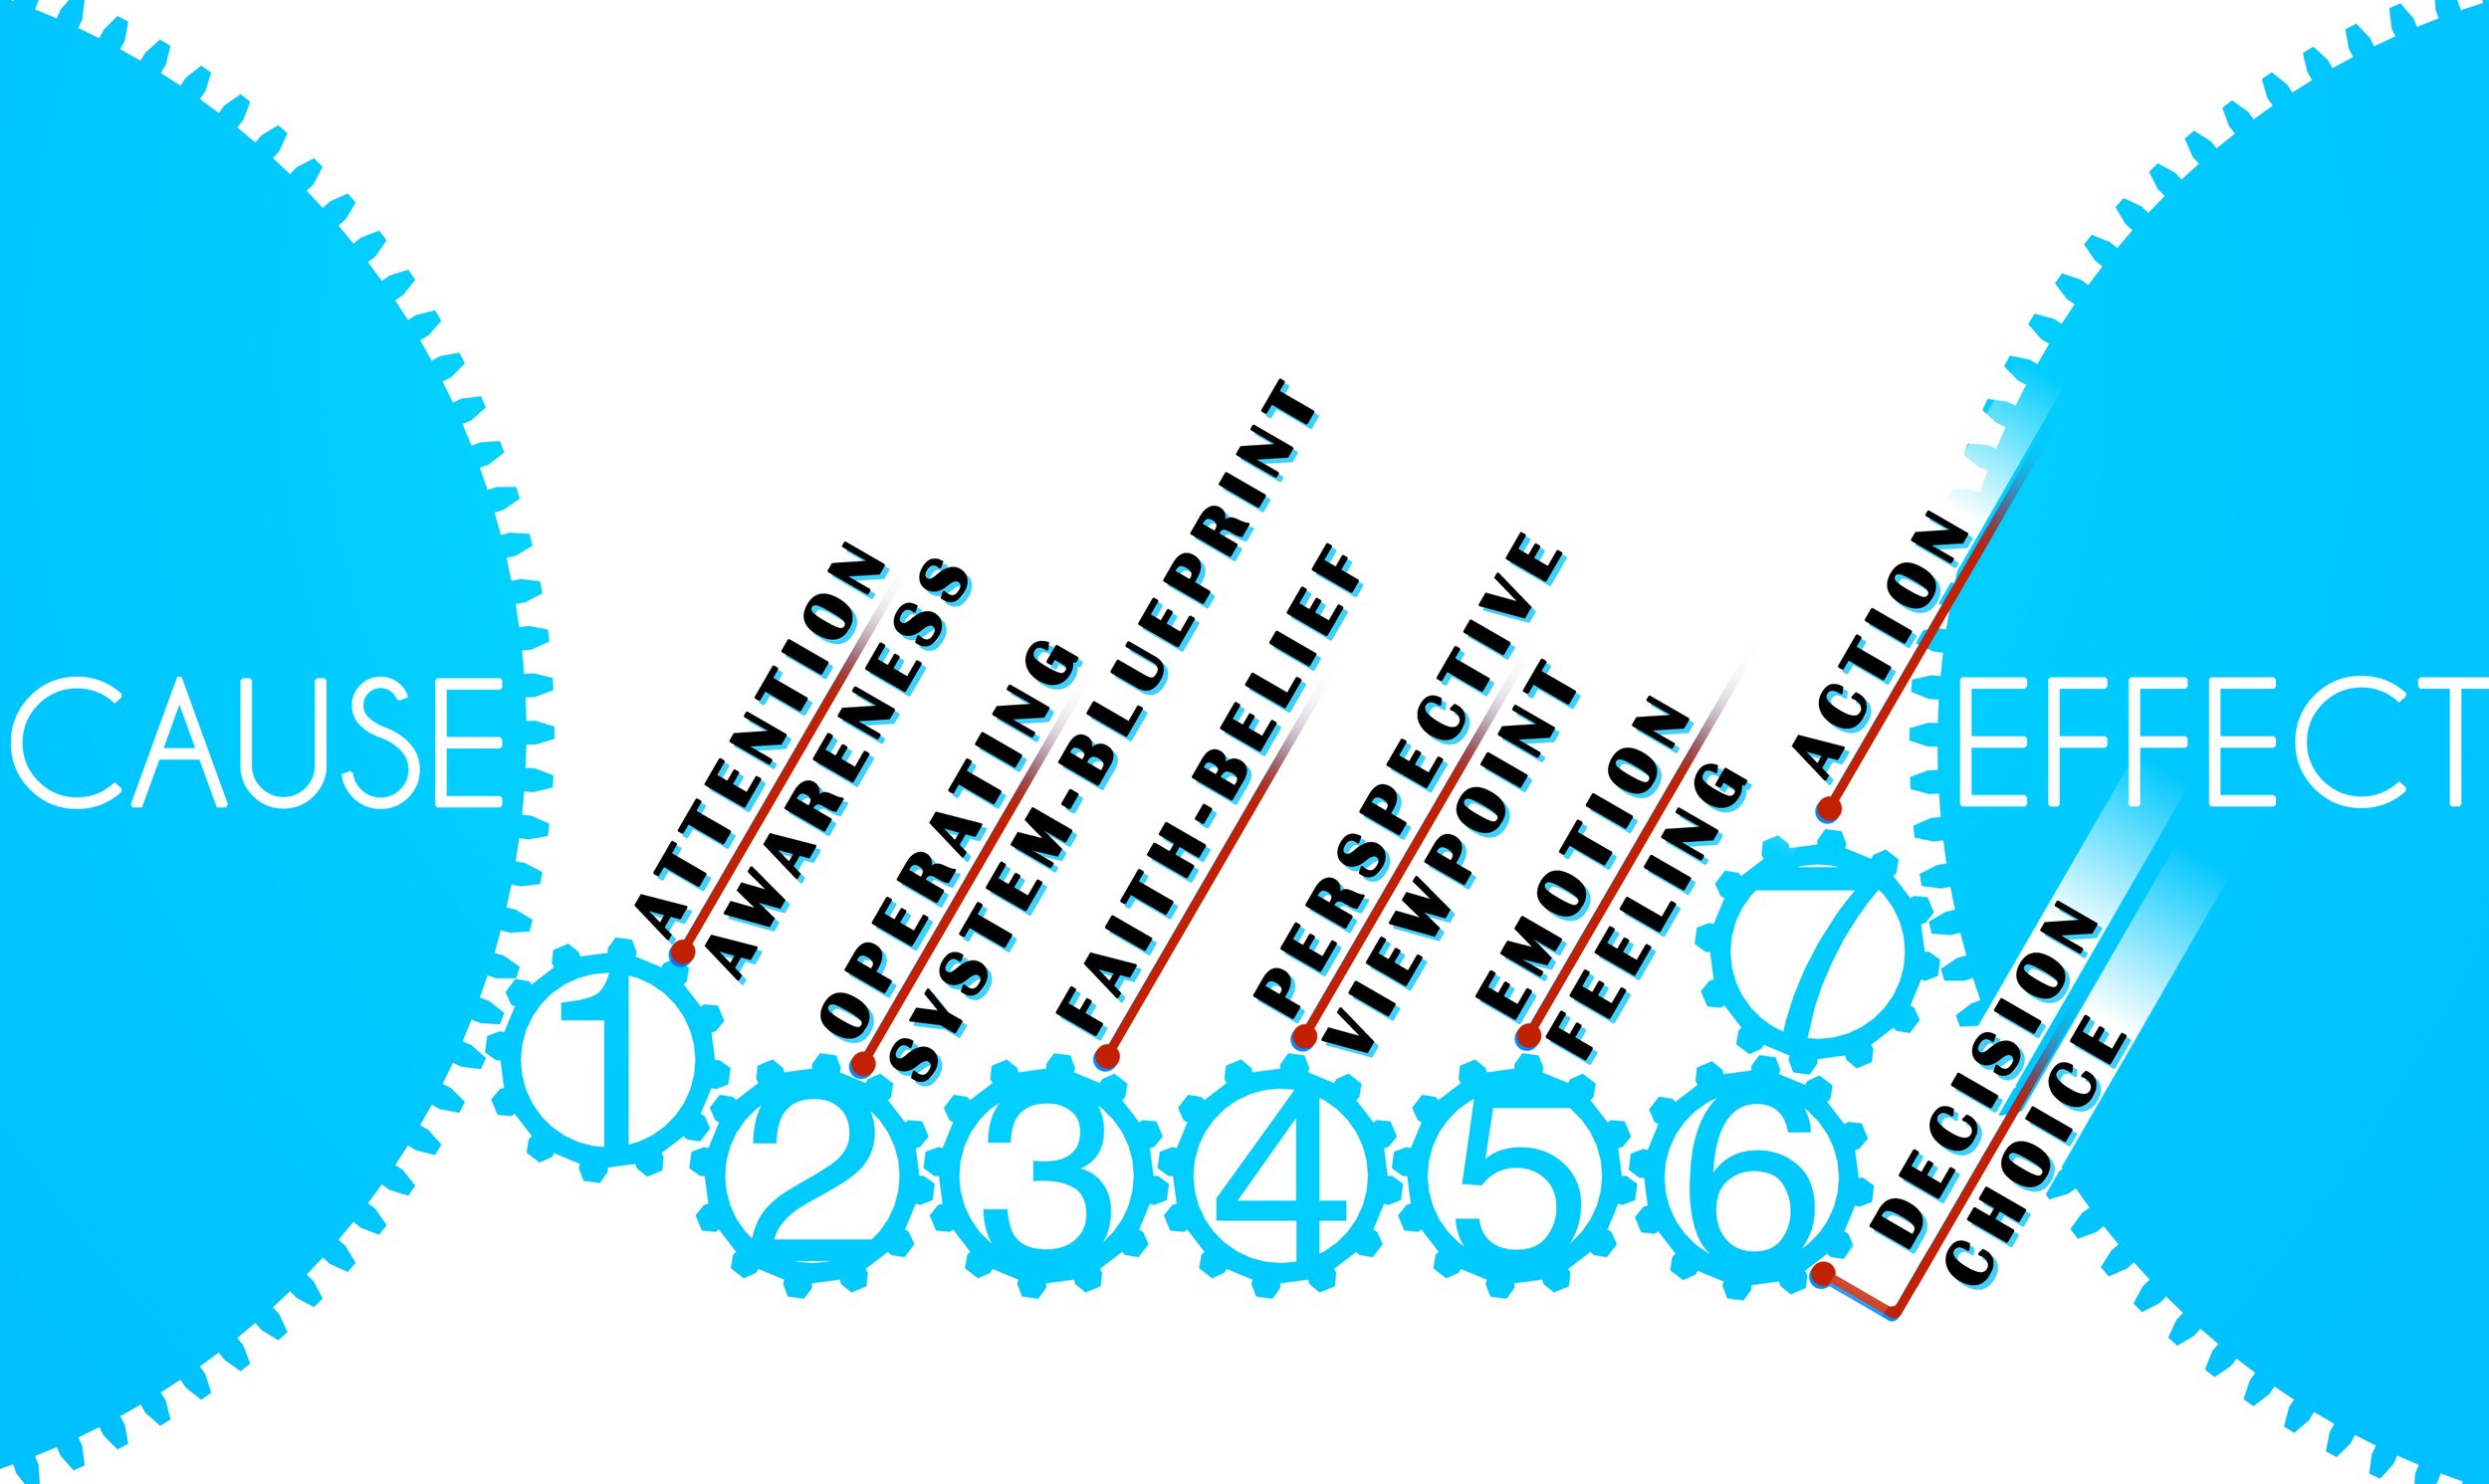 the 7 gears between cause and effect aligned